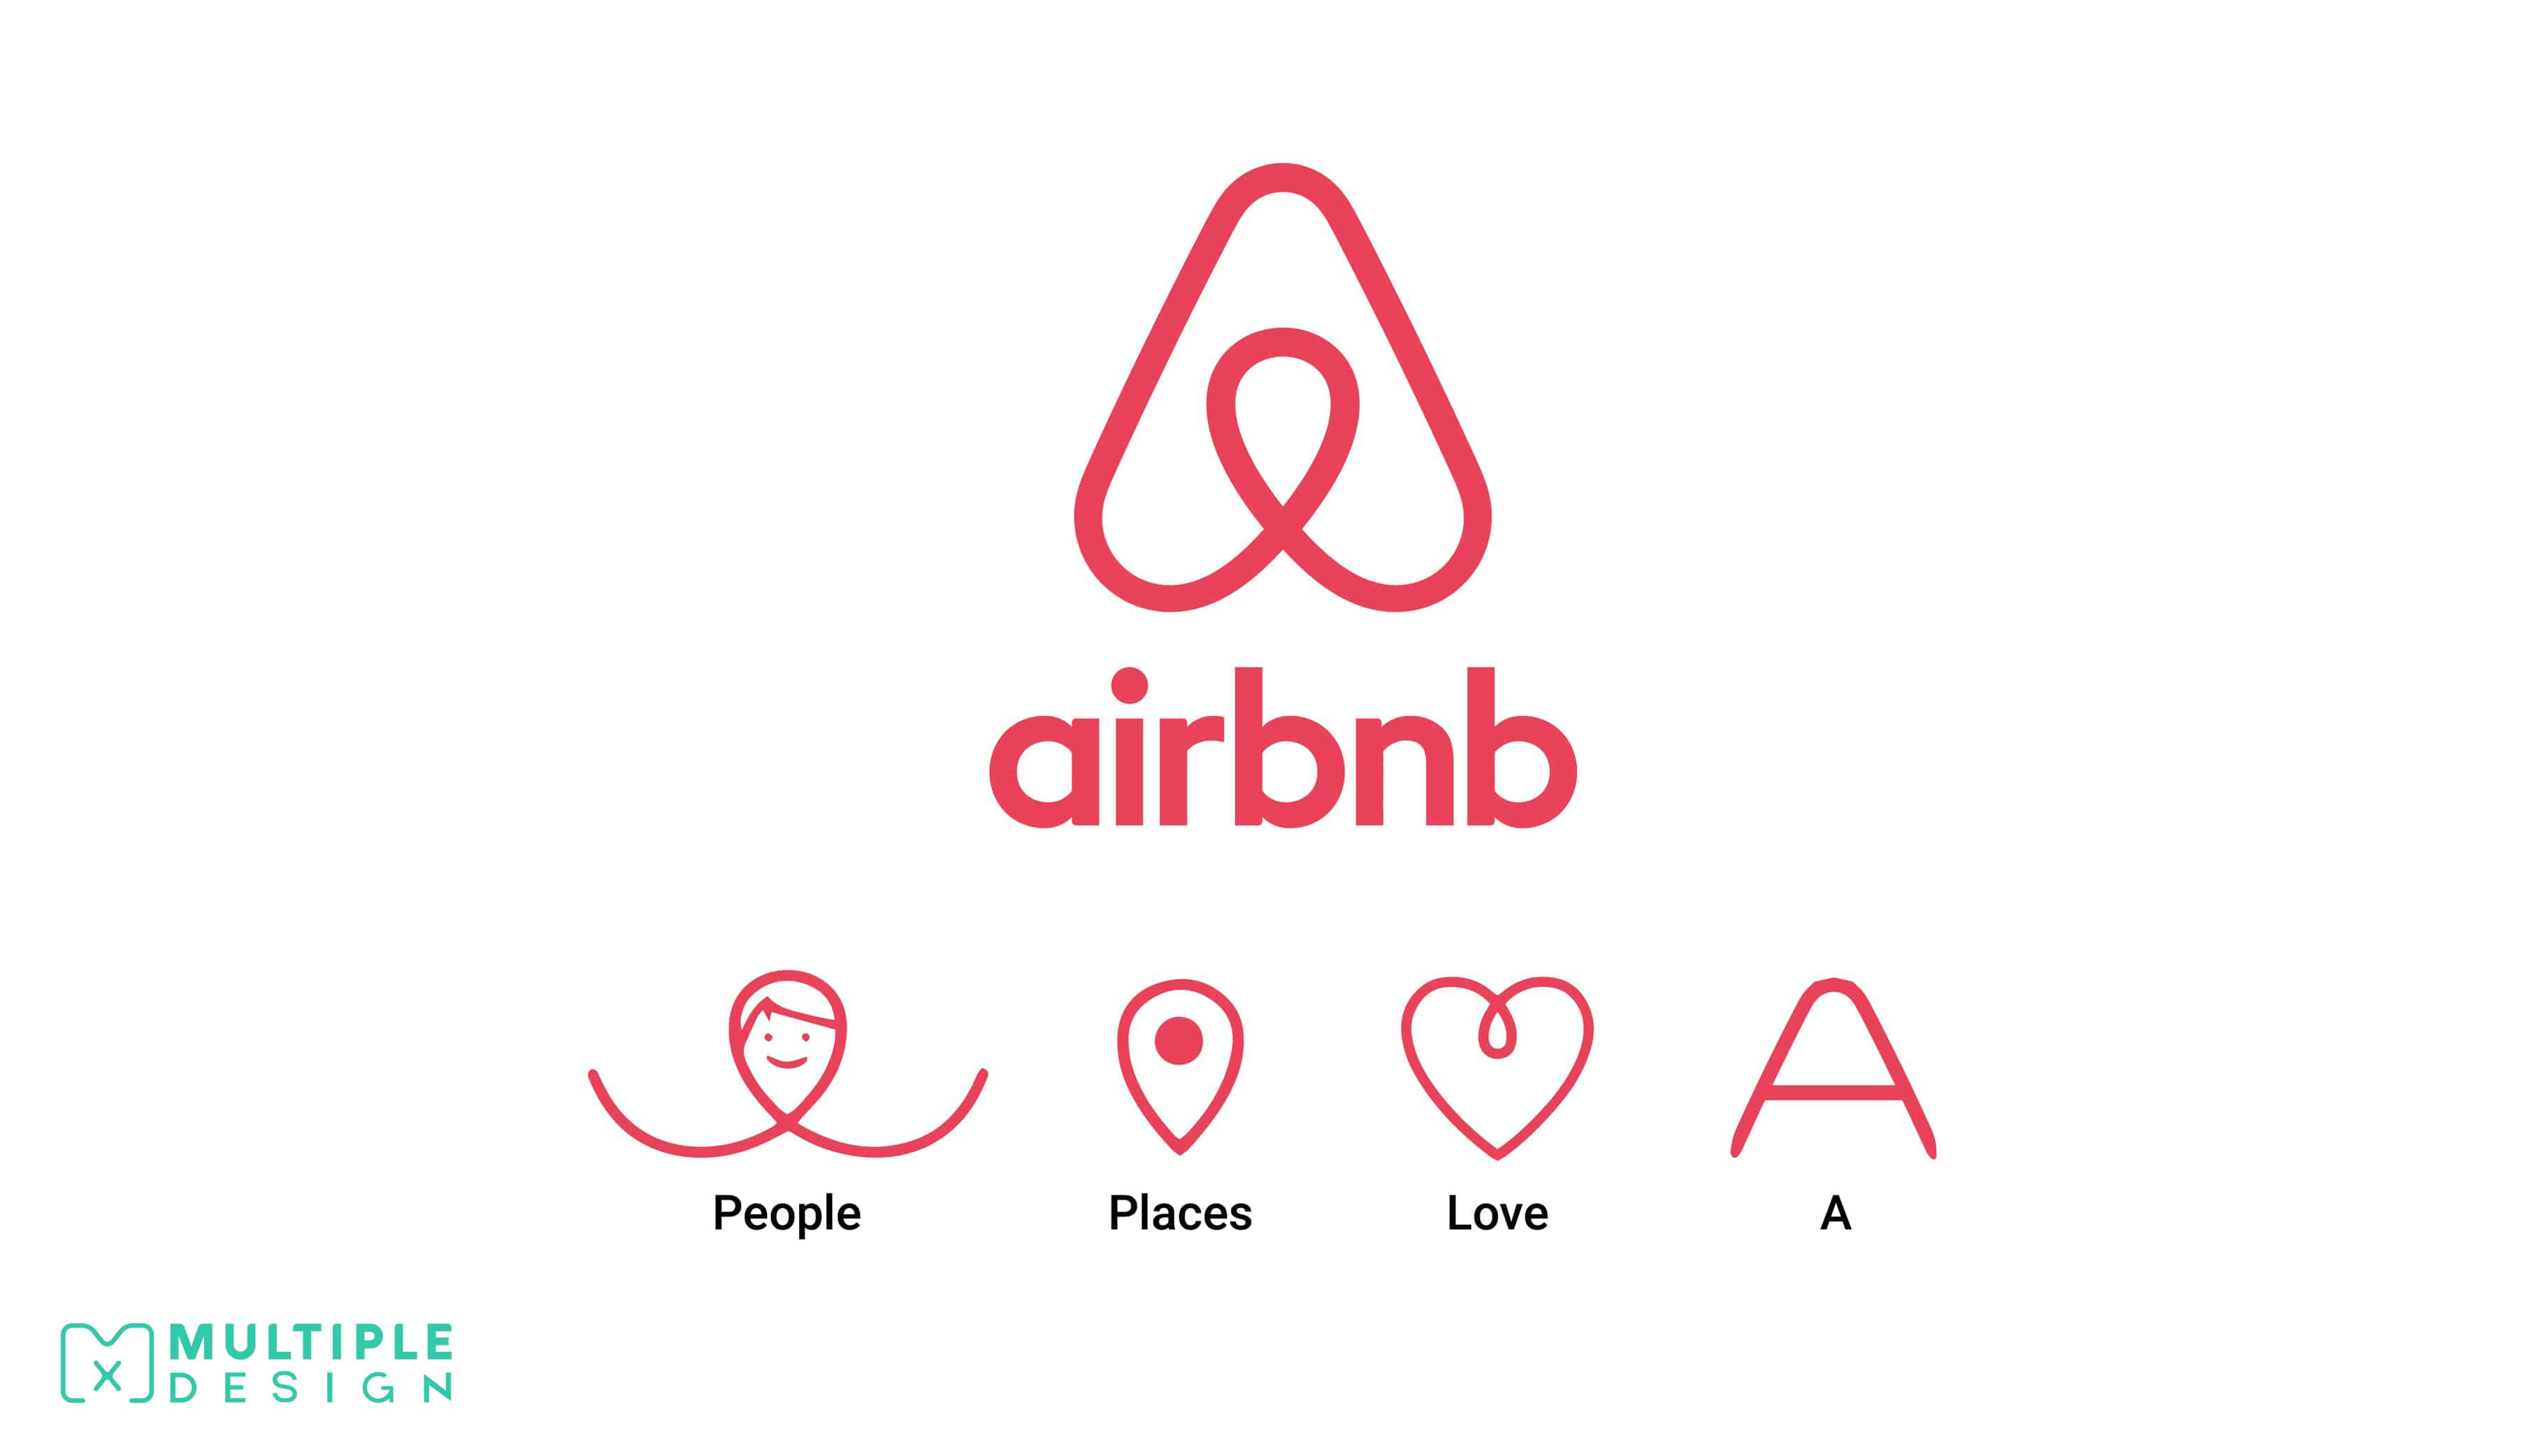 Ultimate logo facts collection multiple graphic design airbnb logo people places love a biocorpaavc Images